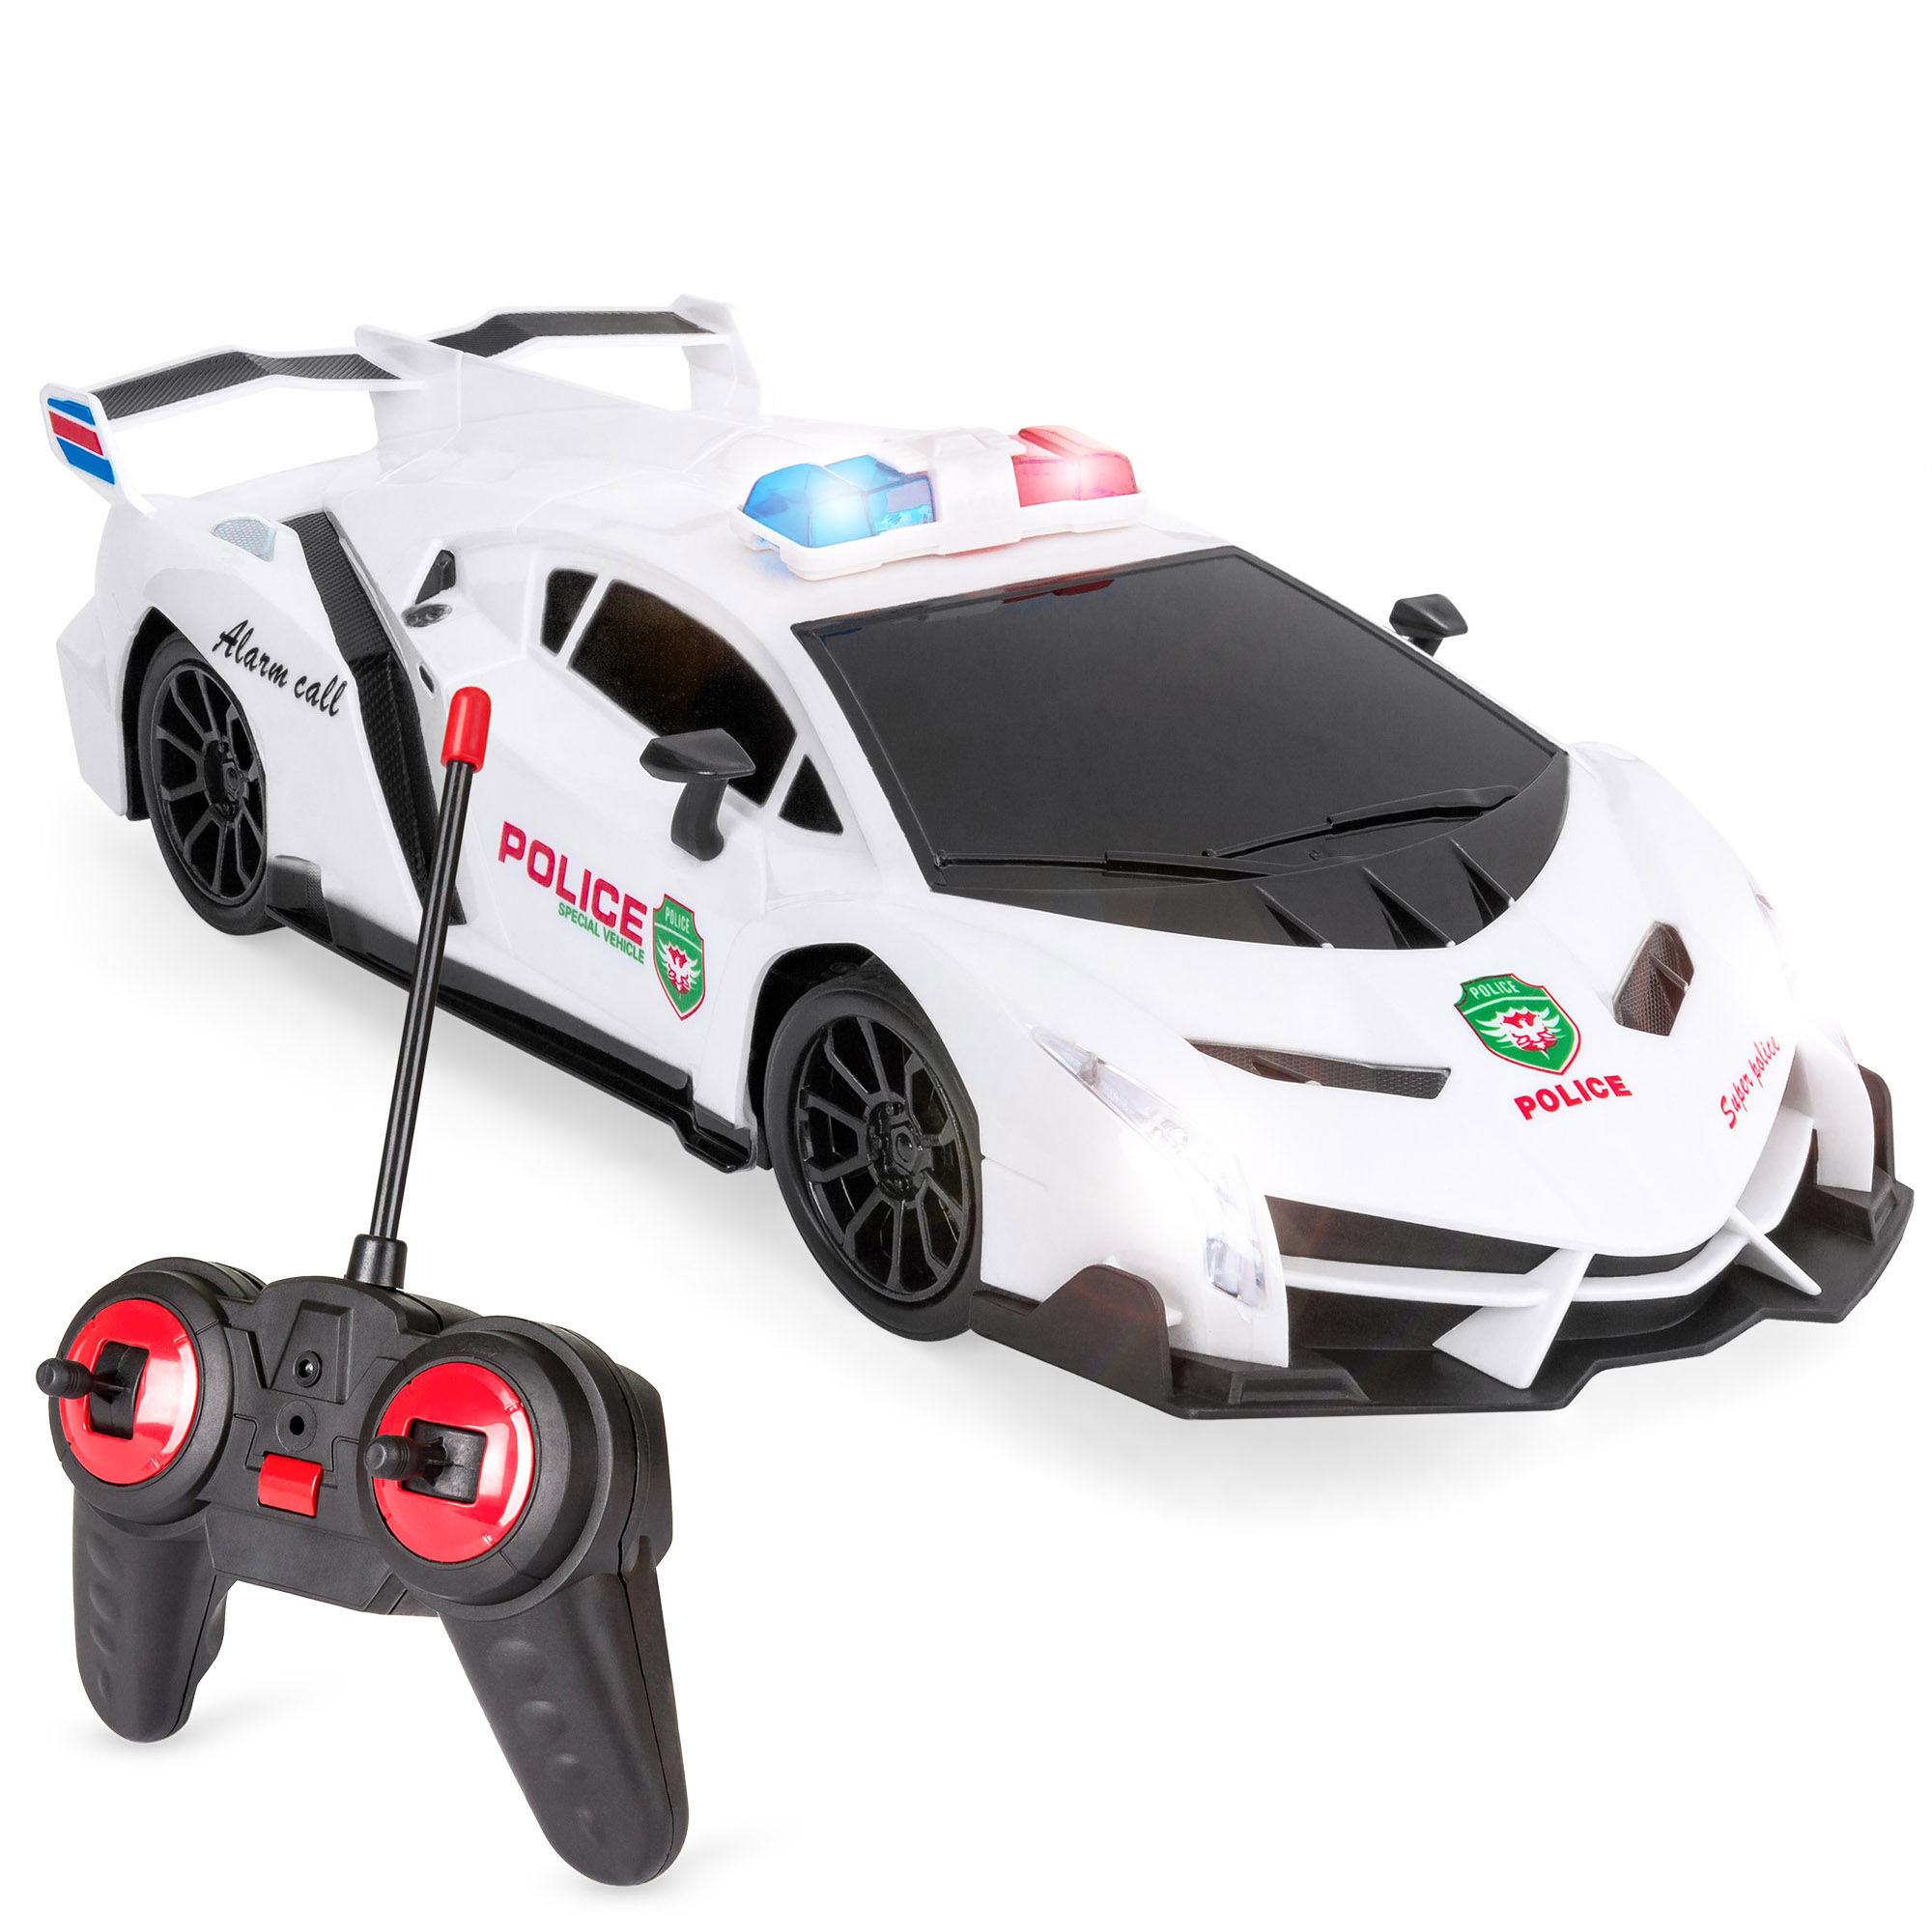 Best Choice Products Kids Remote Control Police Sports Car Toy w/ Headlights, Police Lights - White